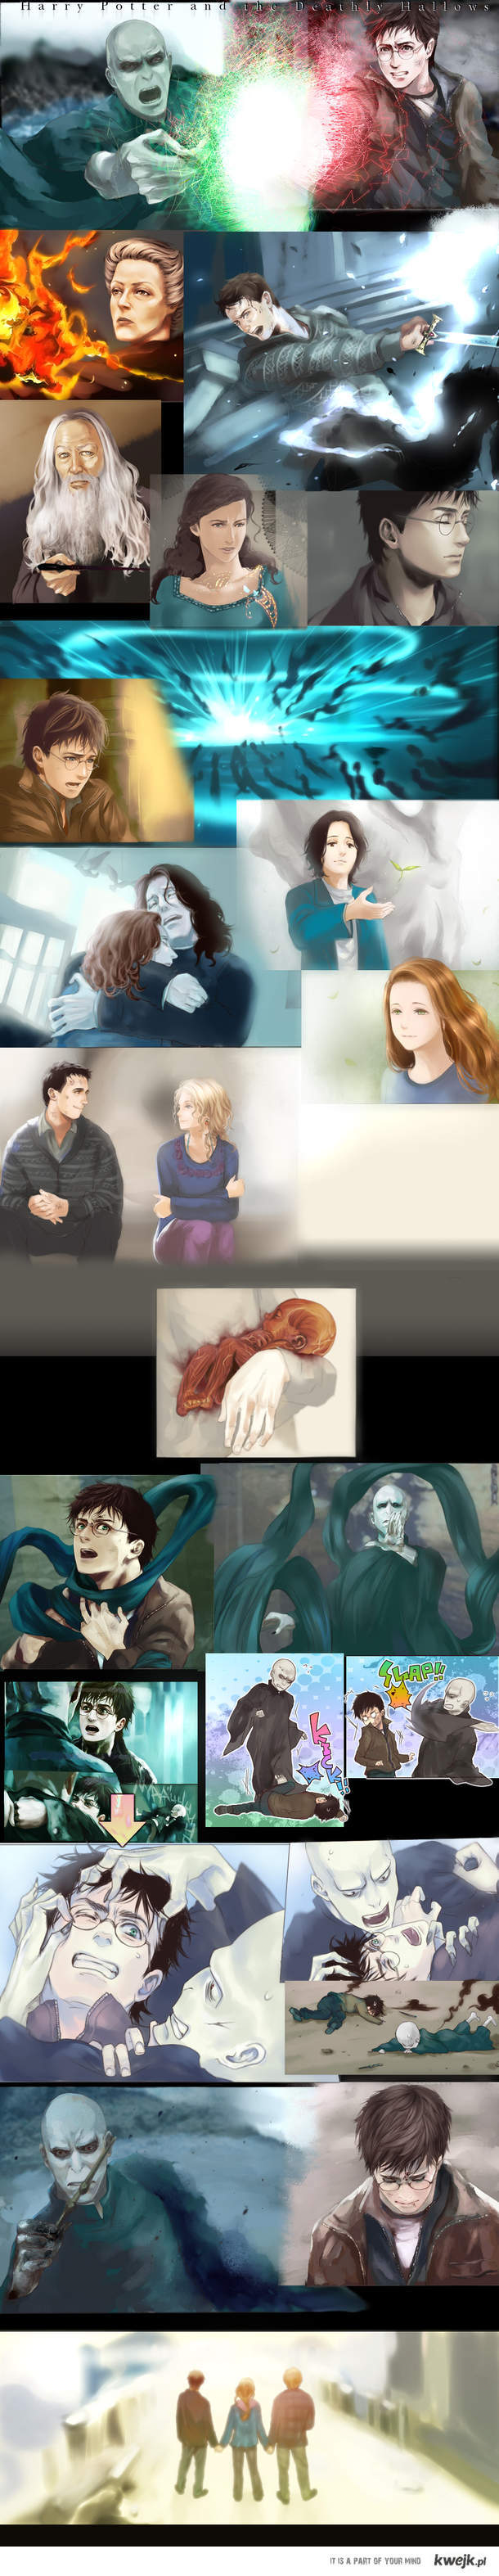 hp and deathly hallows